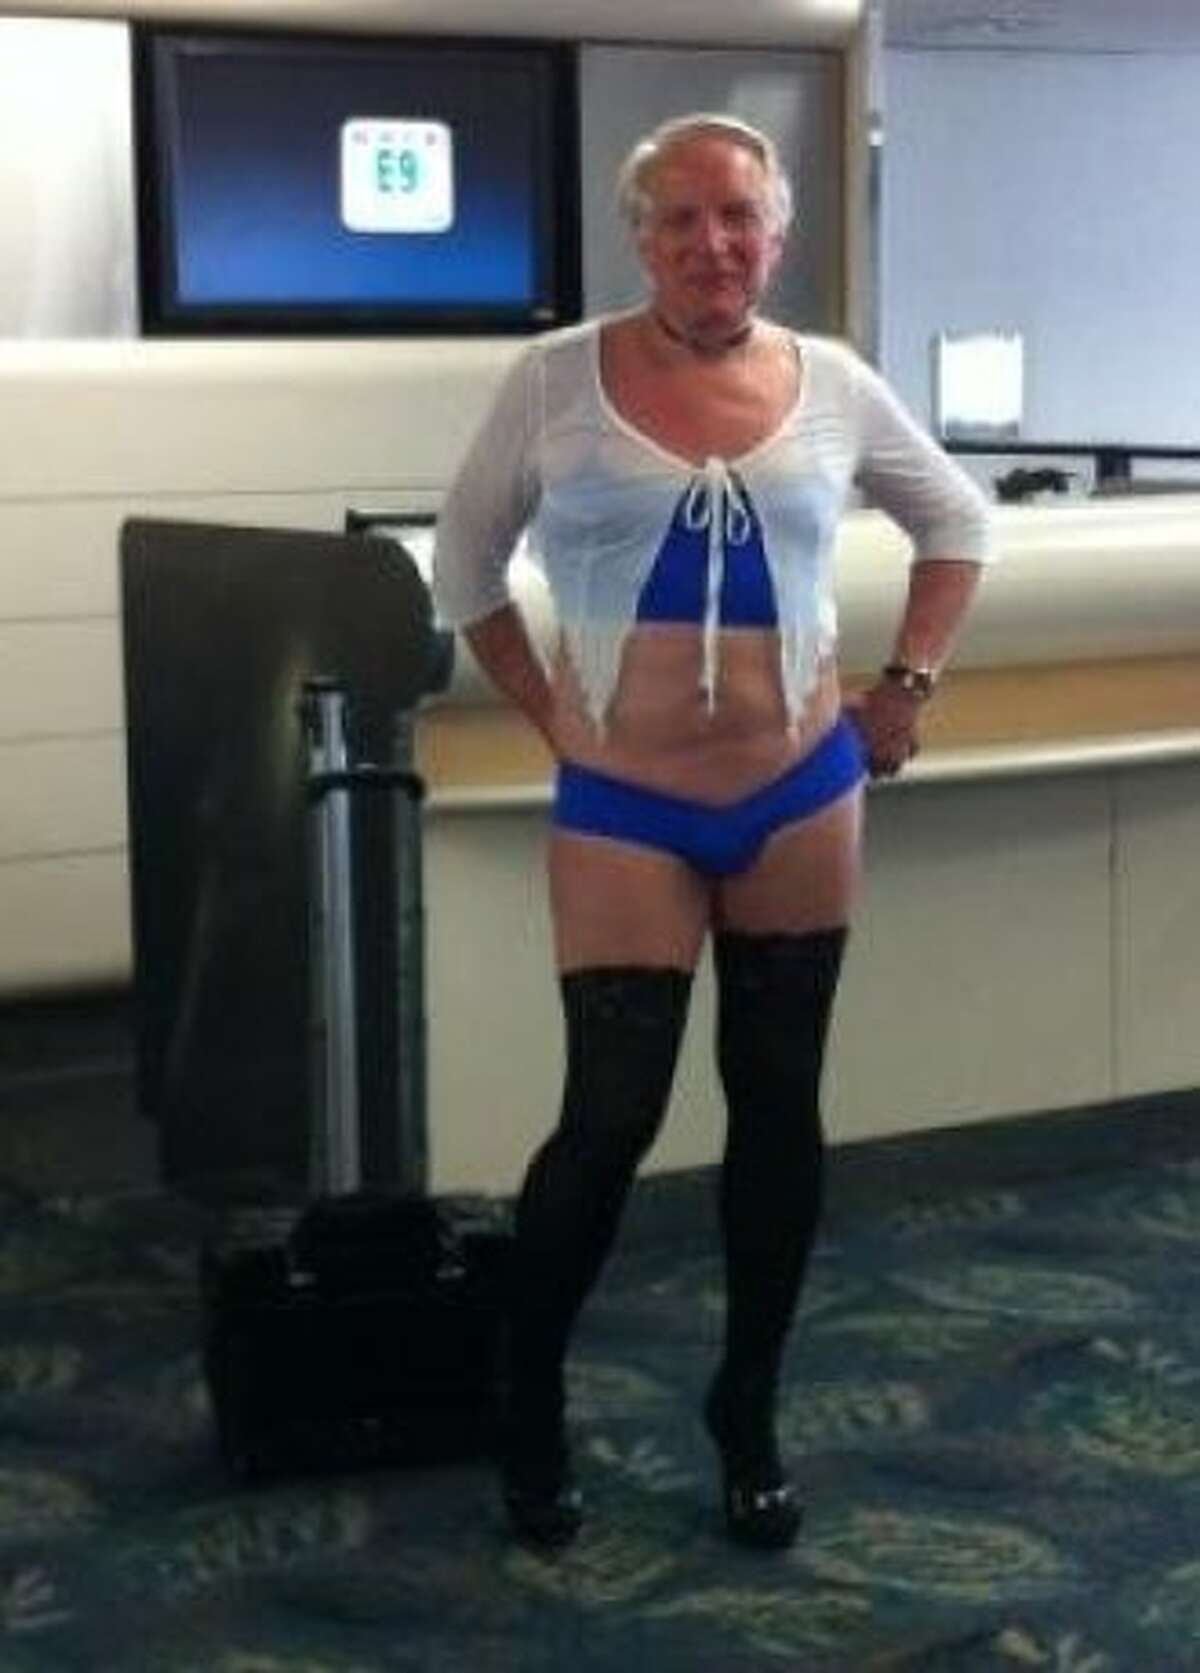 A man who flew on a US Airways flight from Fort Lauderdale, Fla., to Phoenix on June 9, six days before a college football player was thrown off a US Airways plane at San Francisco International Airport for not hitching up his pants. The man in lingerie was photographed in the Fort Lauderdale airport by a fellow passenger.